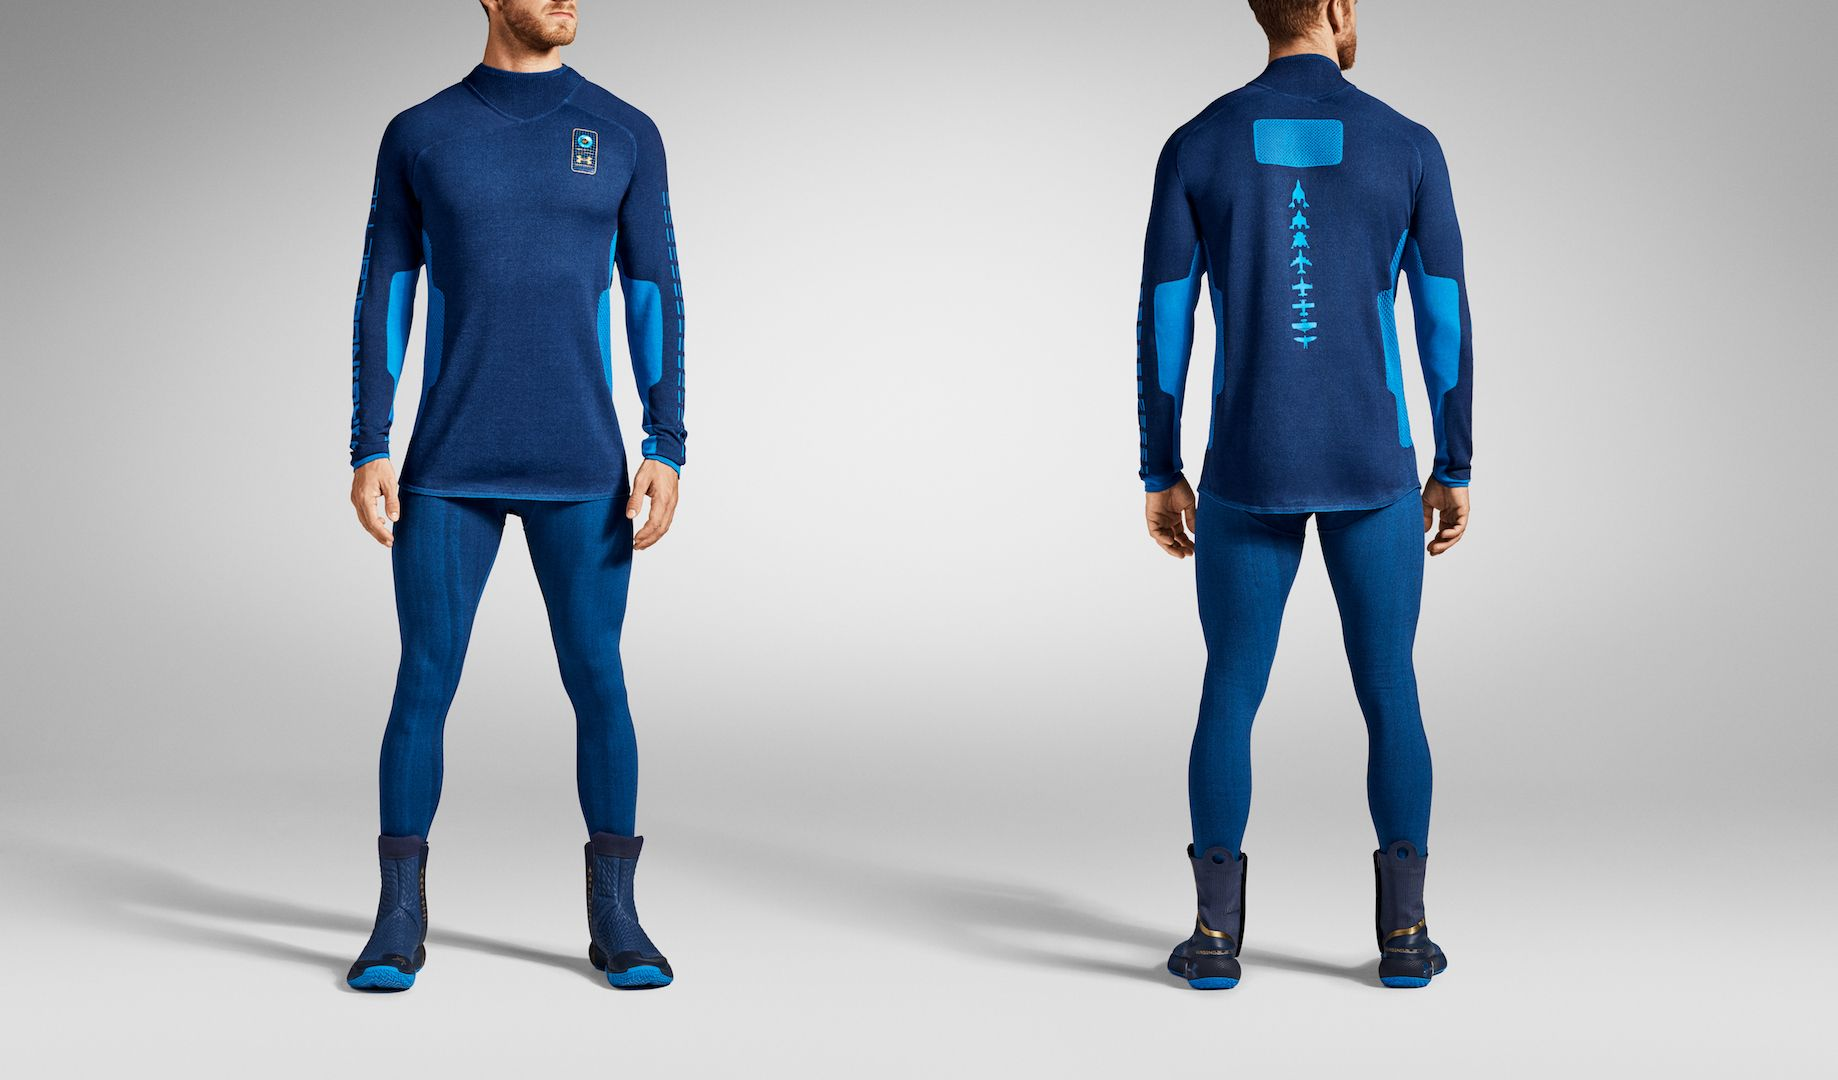 Under Armour Made Spacesuits for Virgin Galactic's Space Tourists